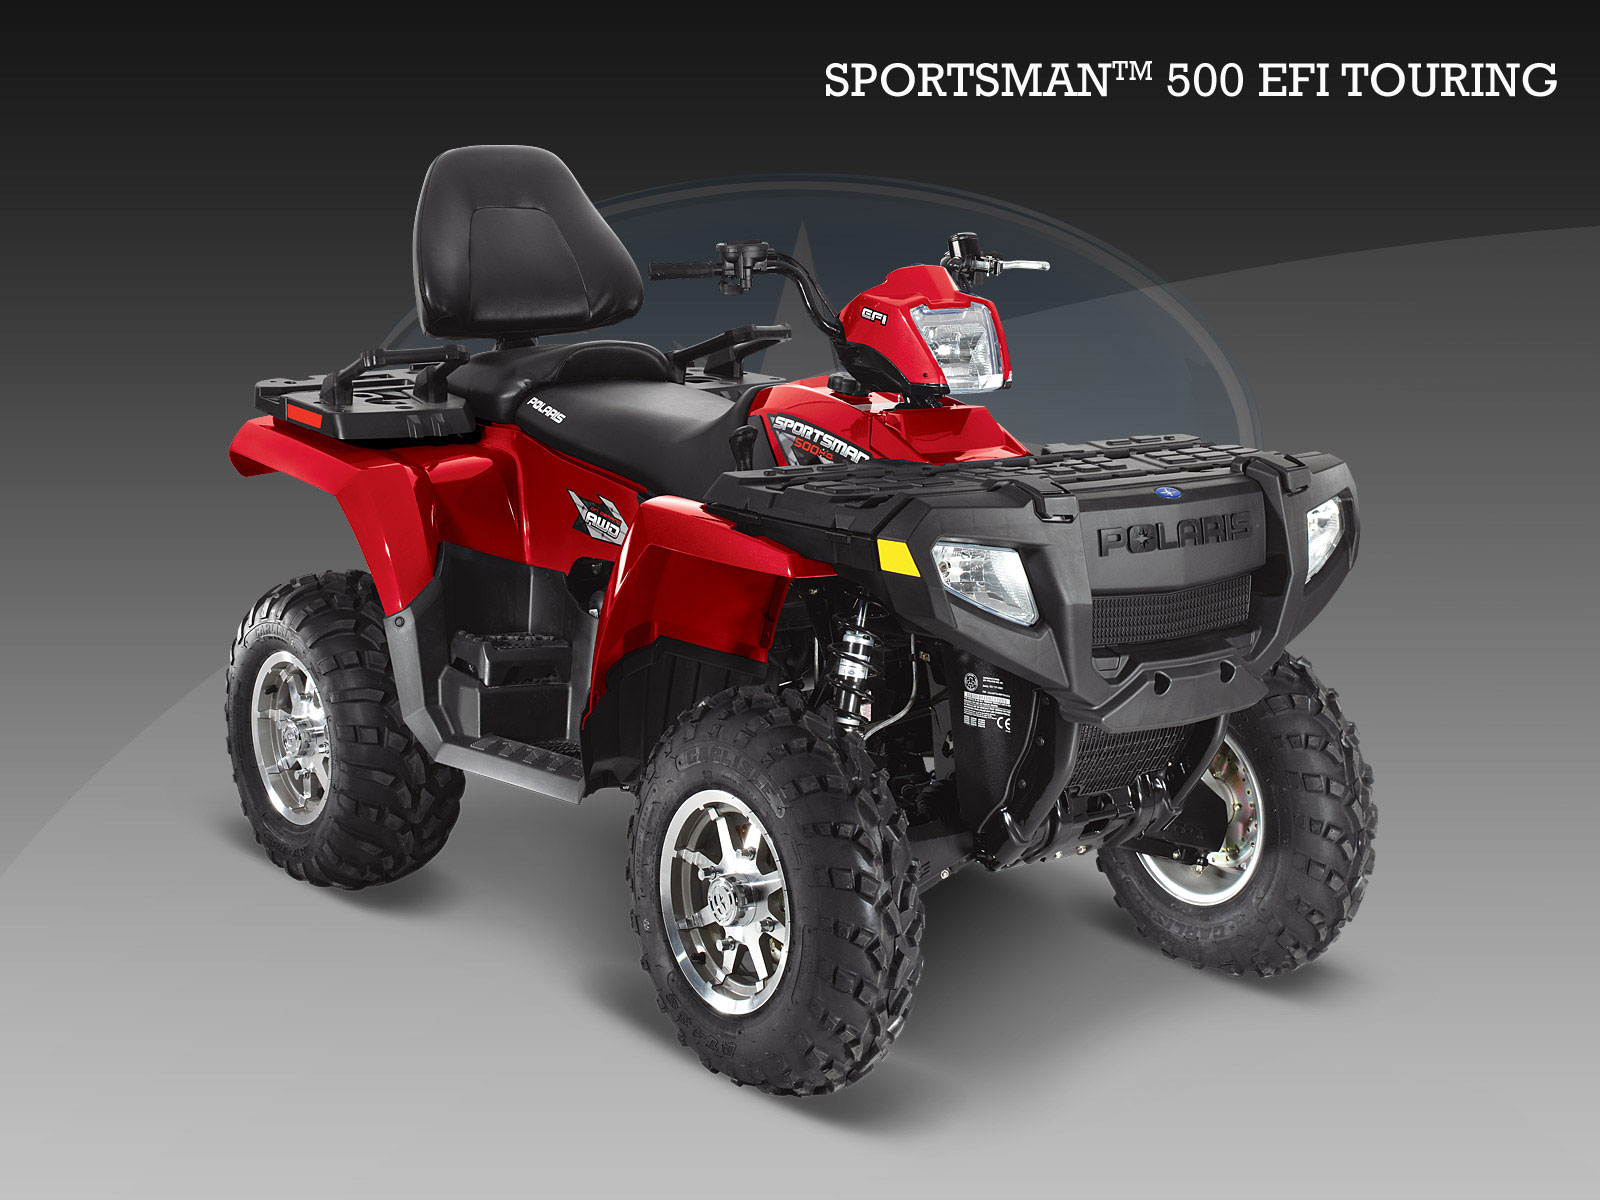 polaris sportsman 500 efi touring specs 2008 2009. Black Bedroom Furniture Sets. Home Design Ideas